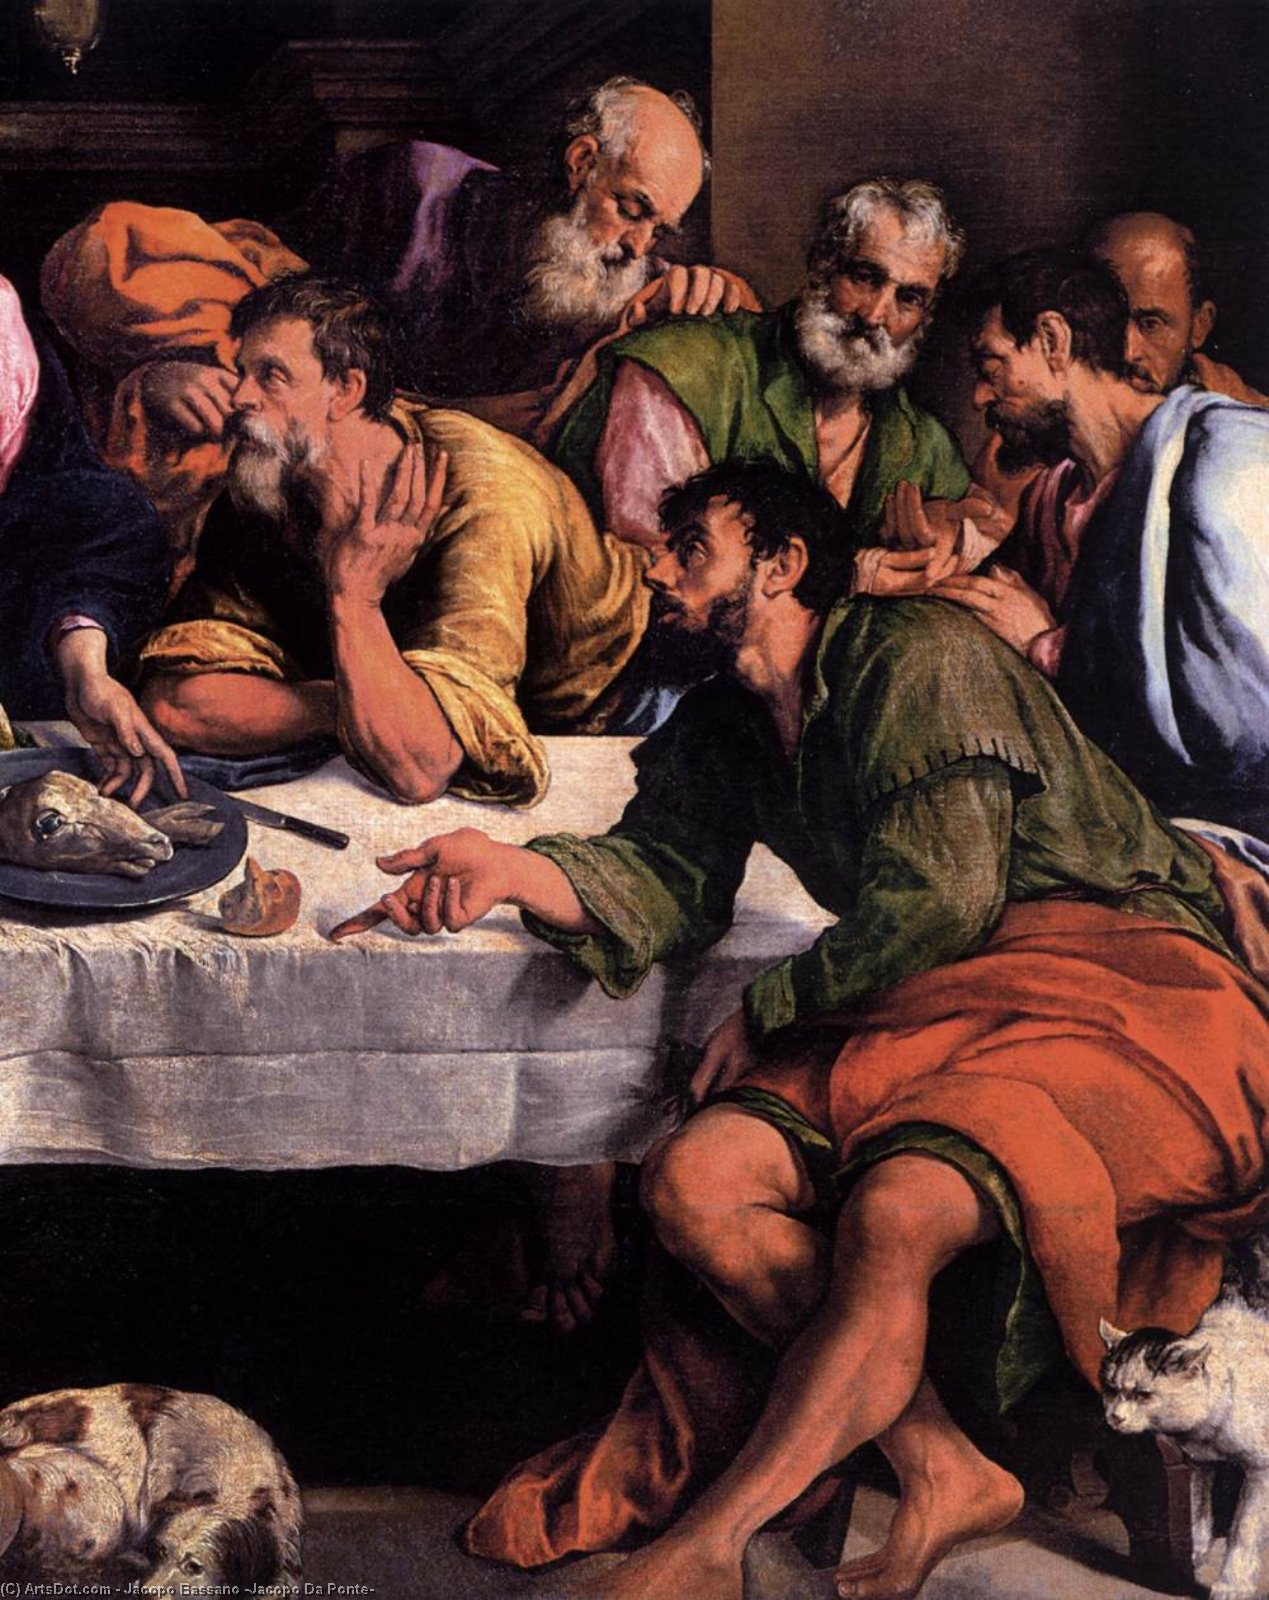 Order Paintings Reproductions | The last supper (detail)1 by Jacopo Bassano (Jacopo Da Ponte) (1510-1592, Italy) | ArtsDot.com